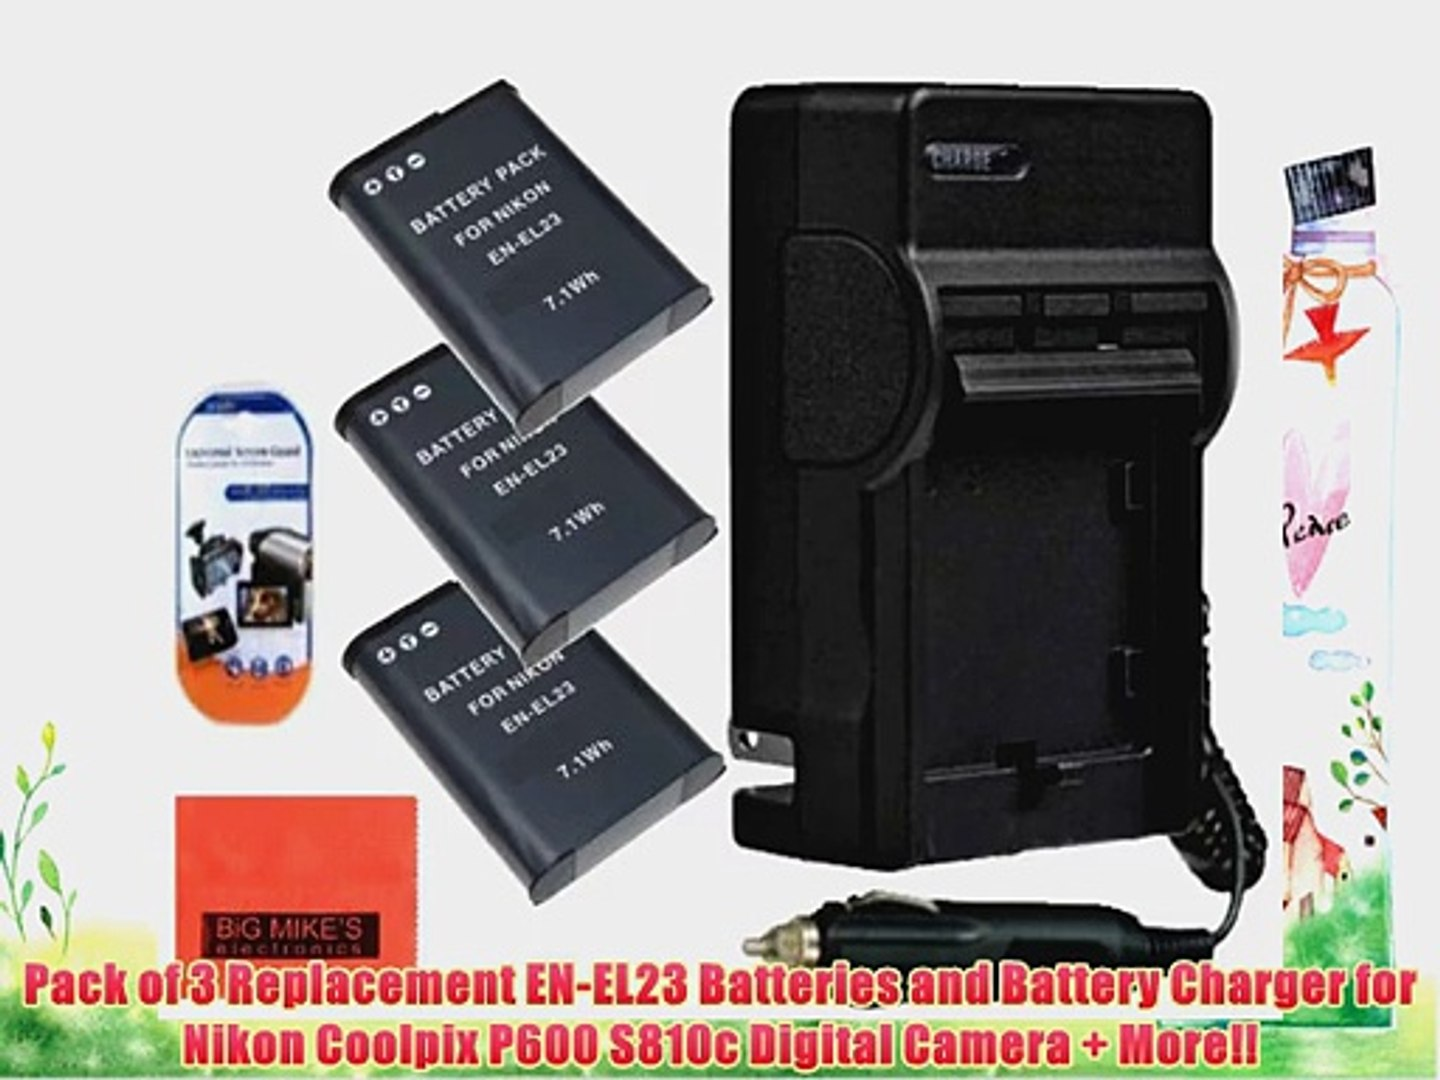 Pack of 3 Replacement EN-EL23 Batteries and Battery Charger for Nikon Coolpix P600 S810c Digital